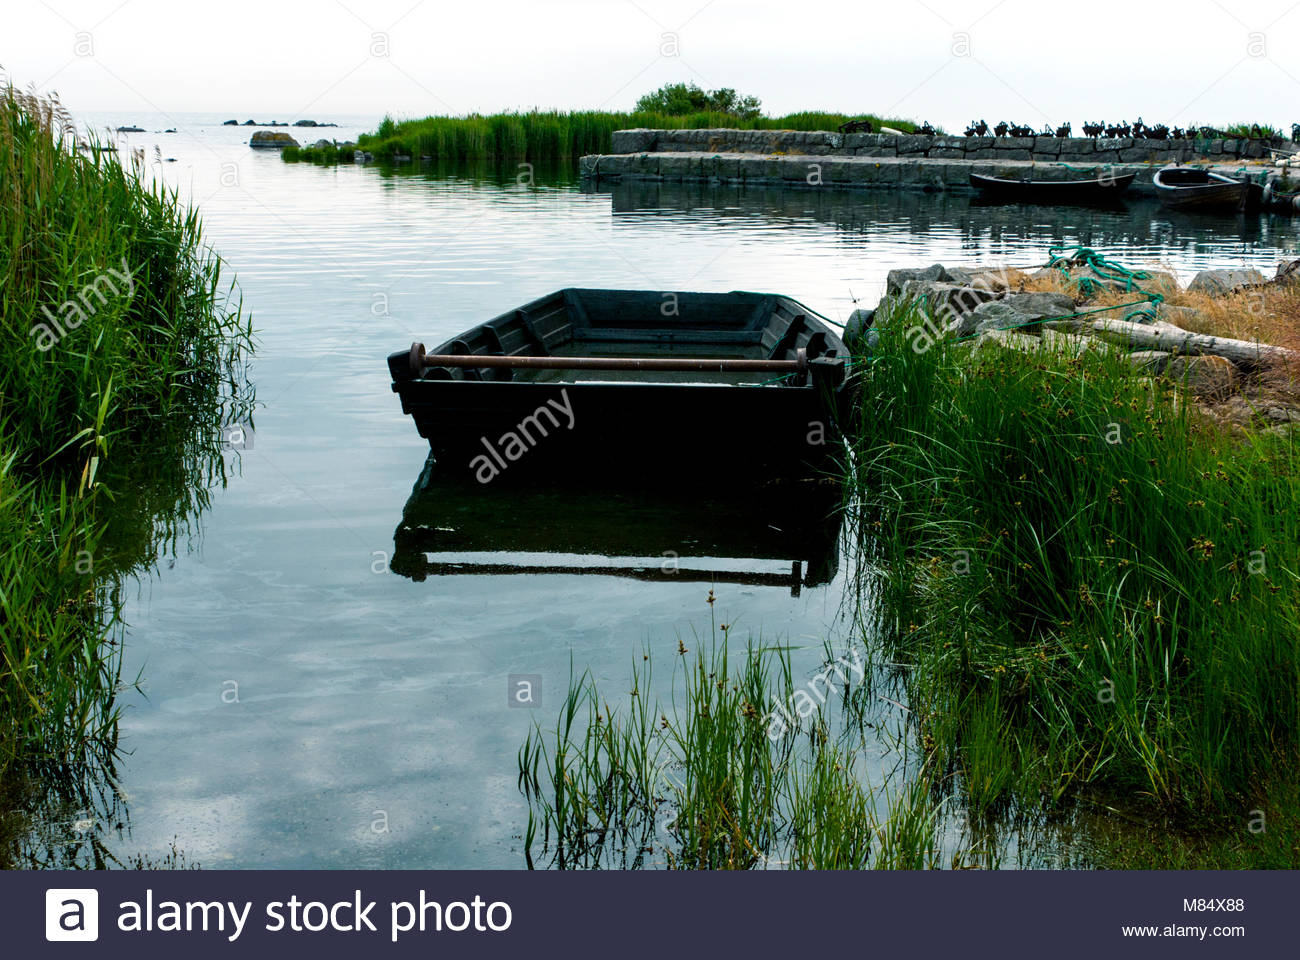 Wooden boats and old fishing gear. - Stock Image